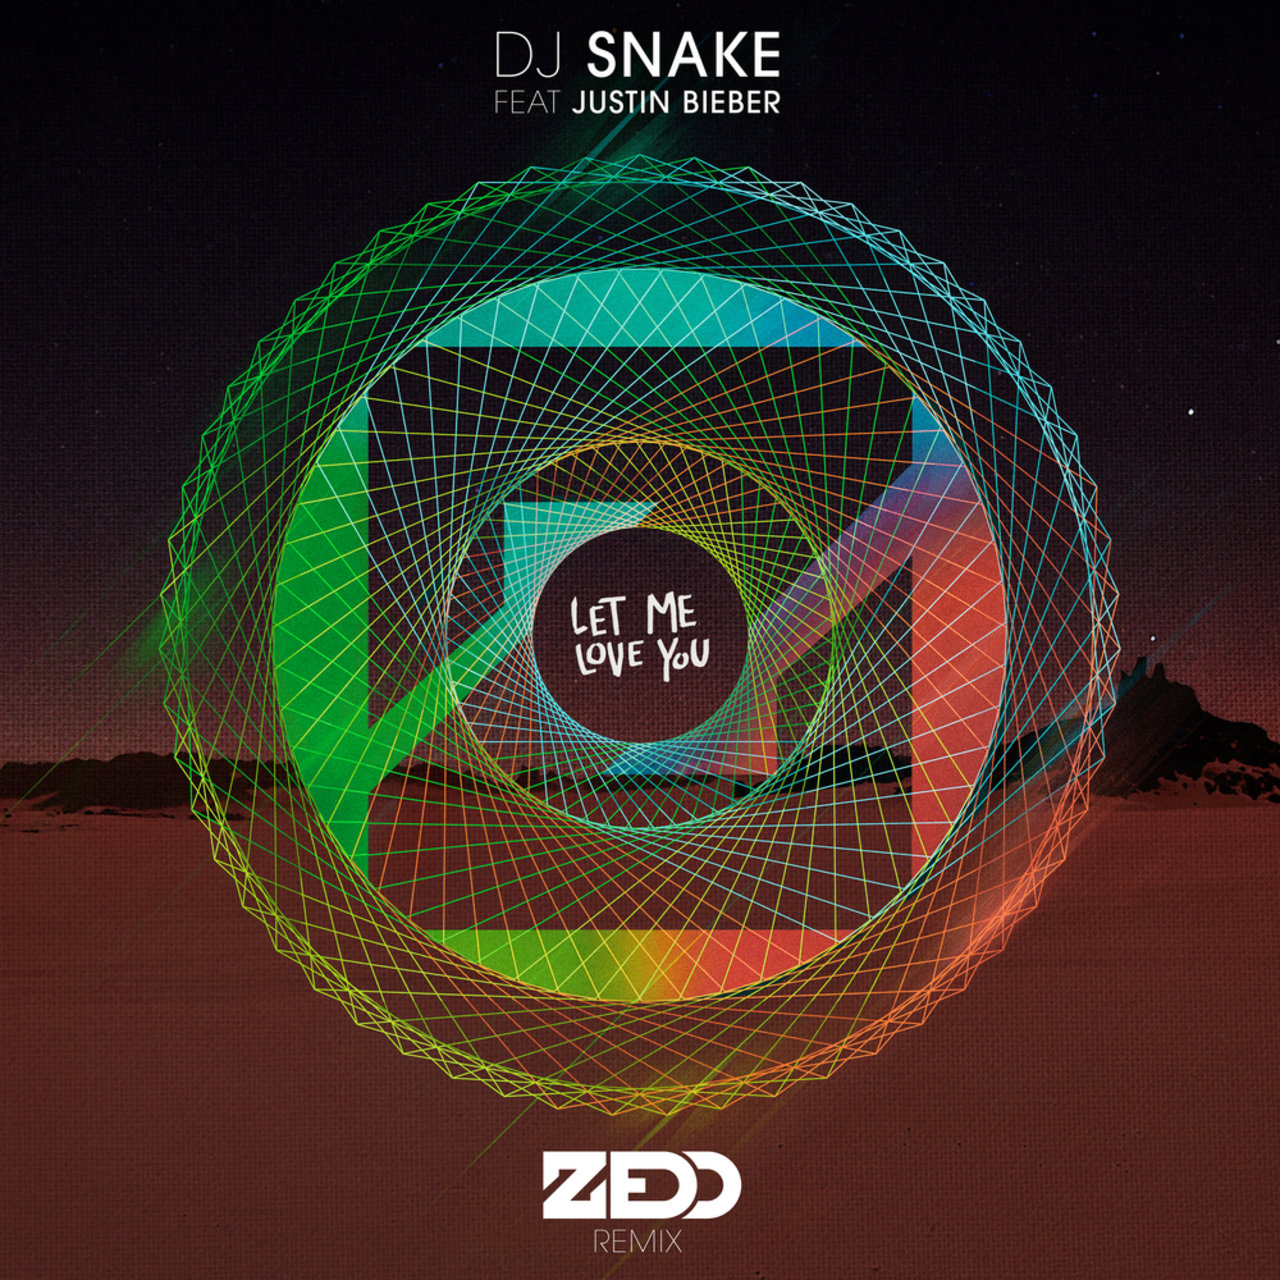 Let Me Love You (Zedd Remix)